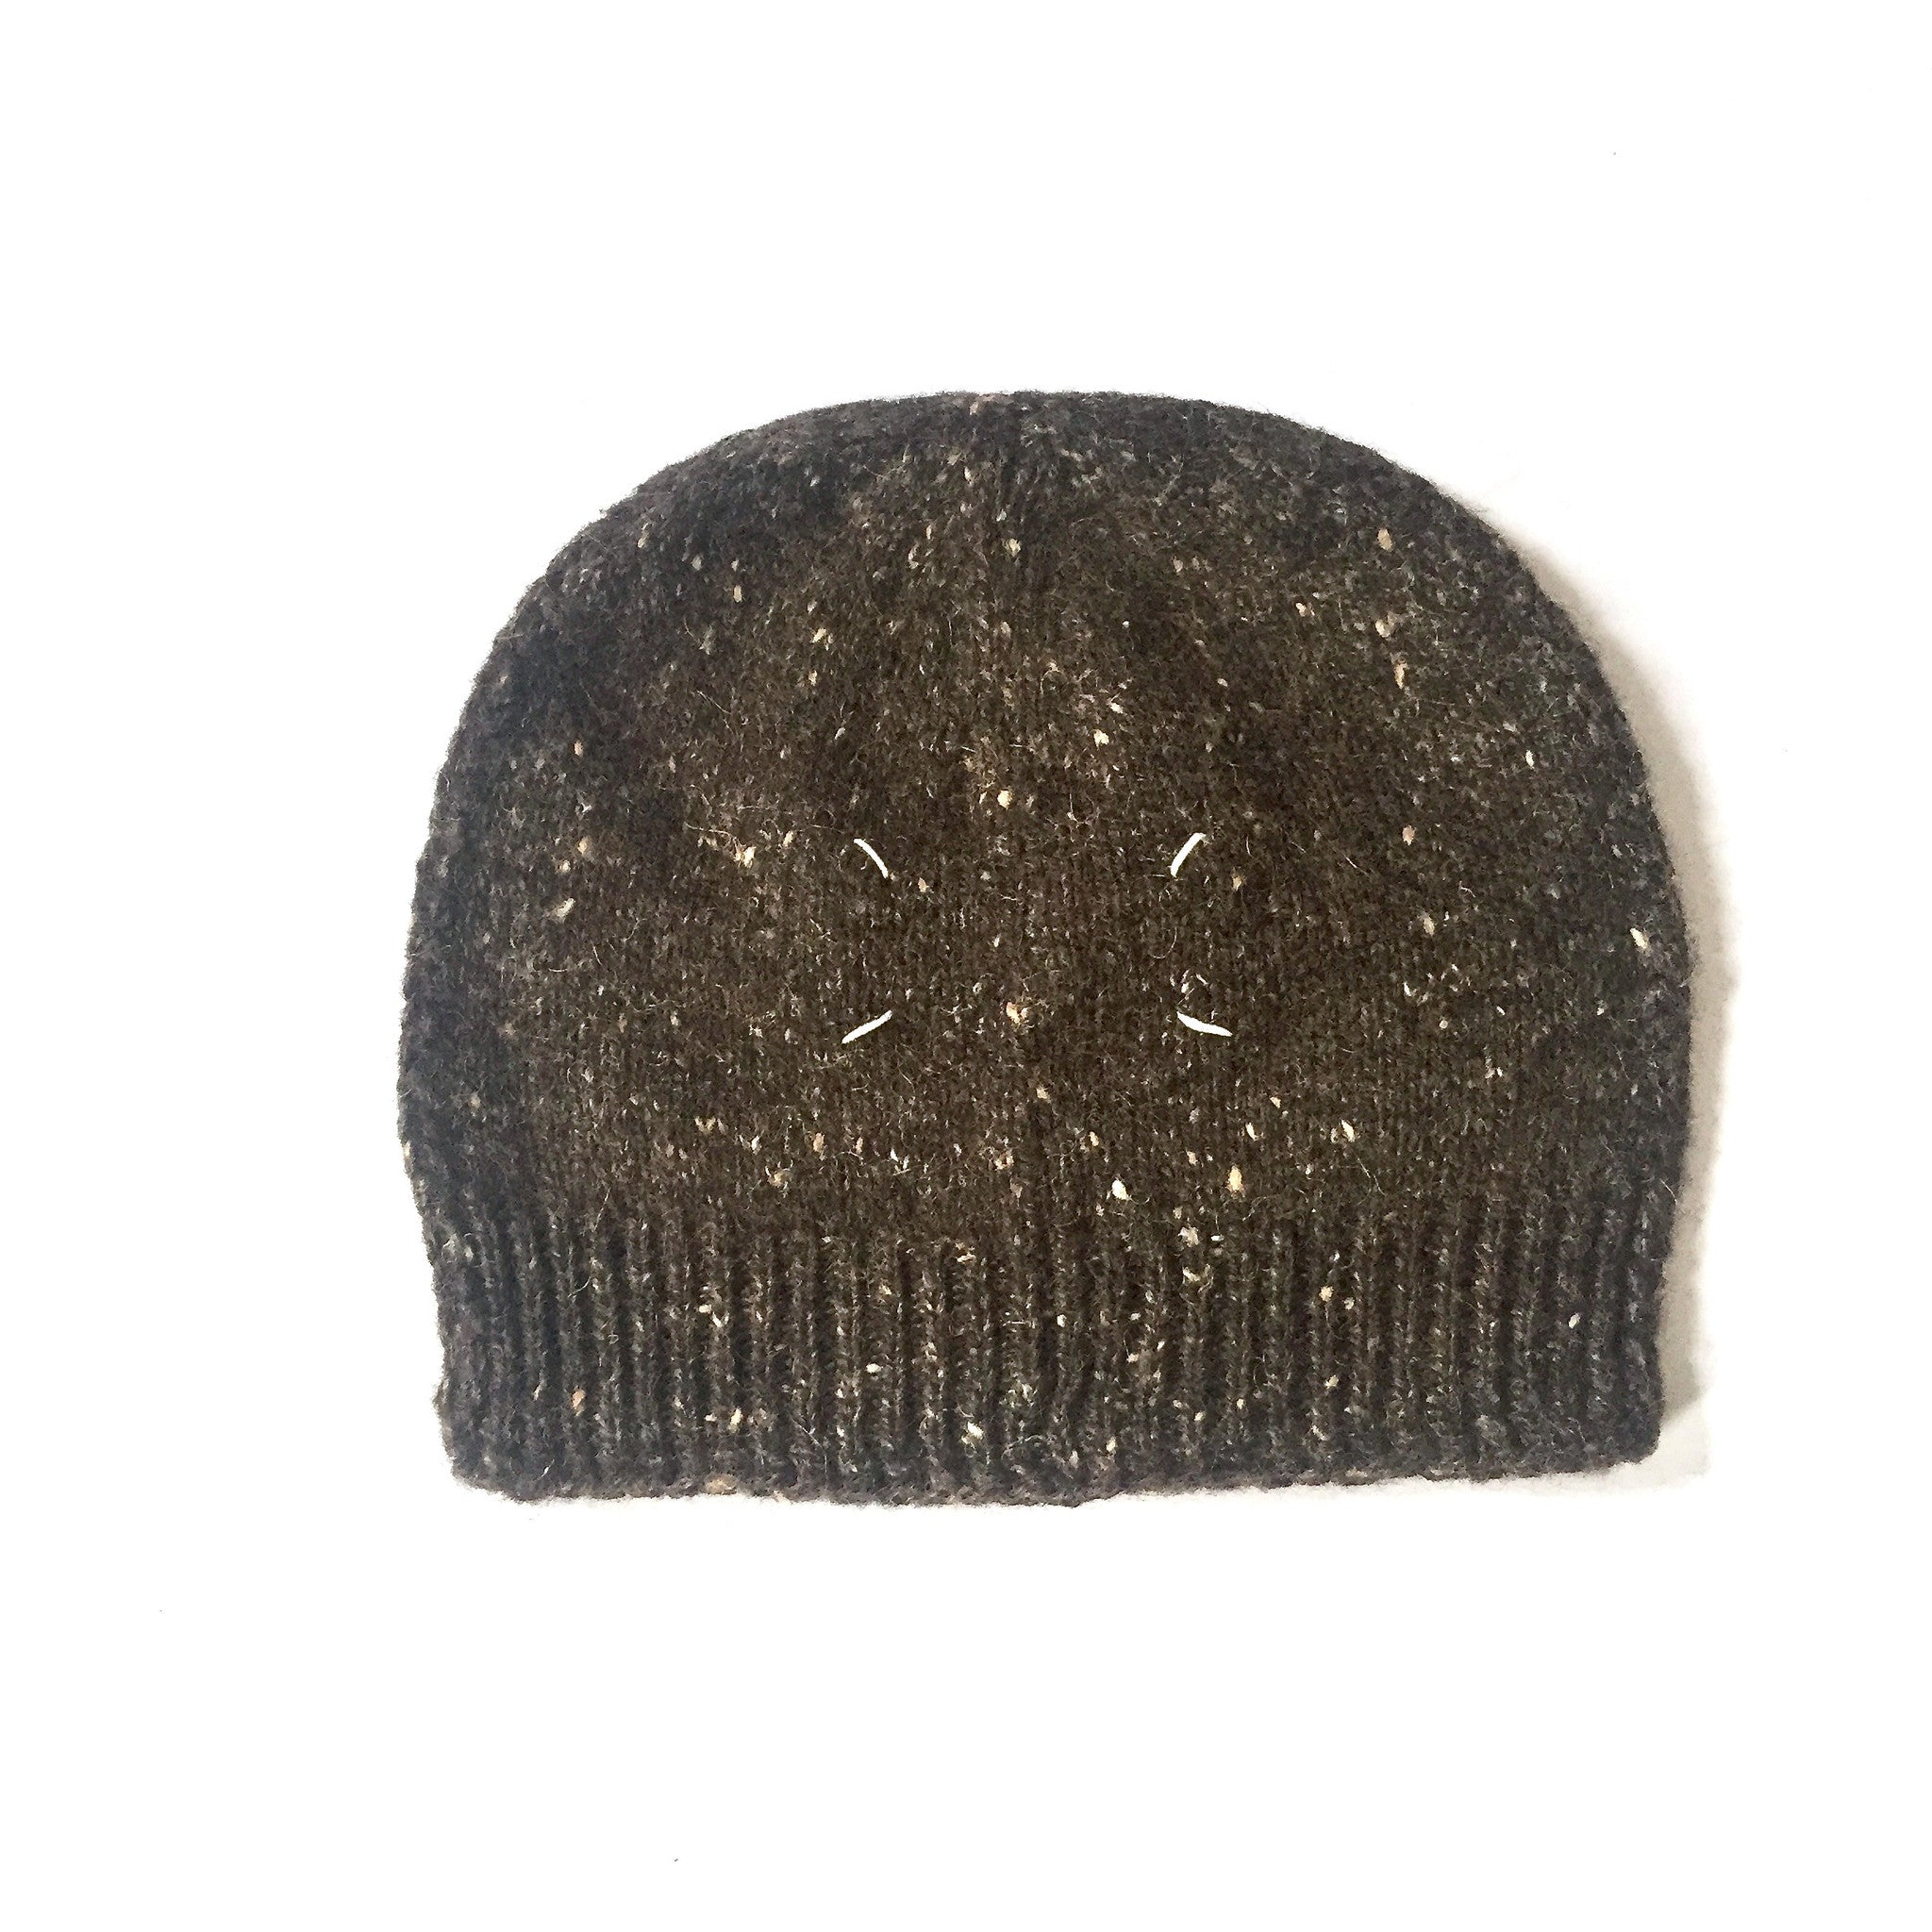 0d04cd76f82 Maison Margiela - Men s Brown Flecked Wool Knit Beanie Hat – eluXive